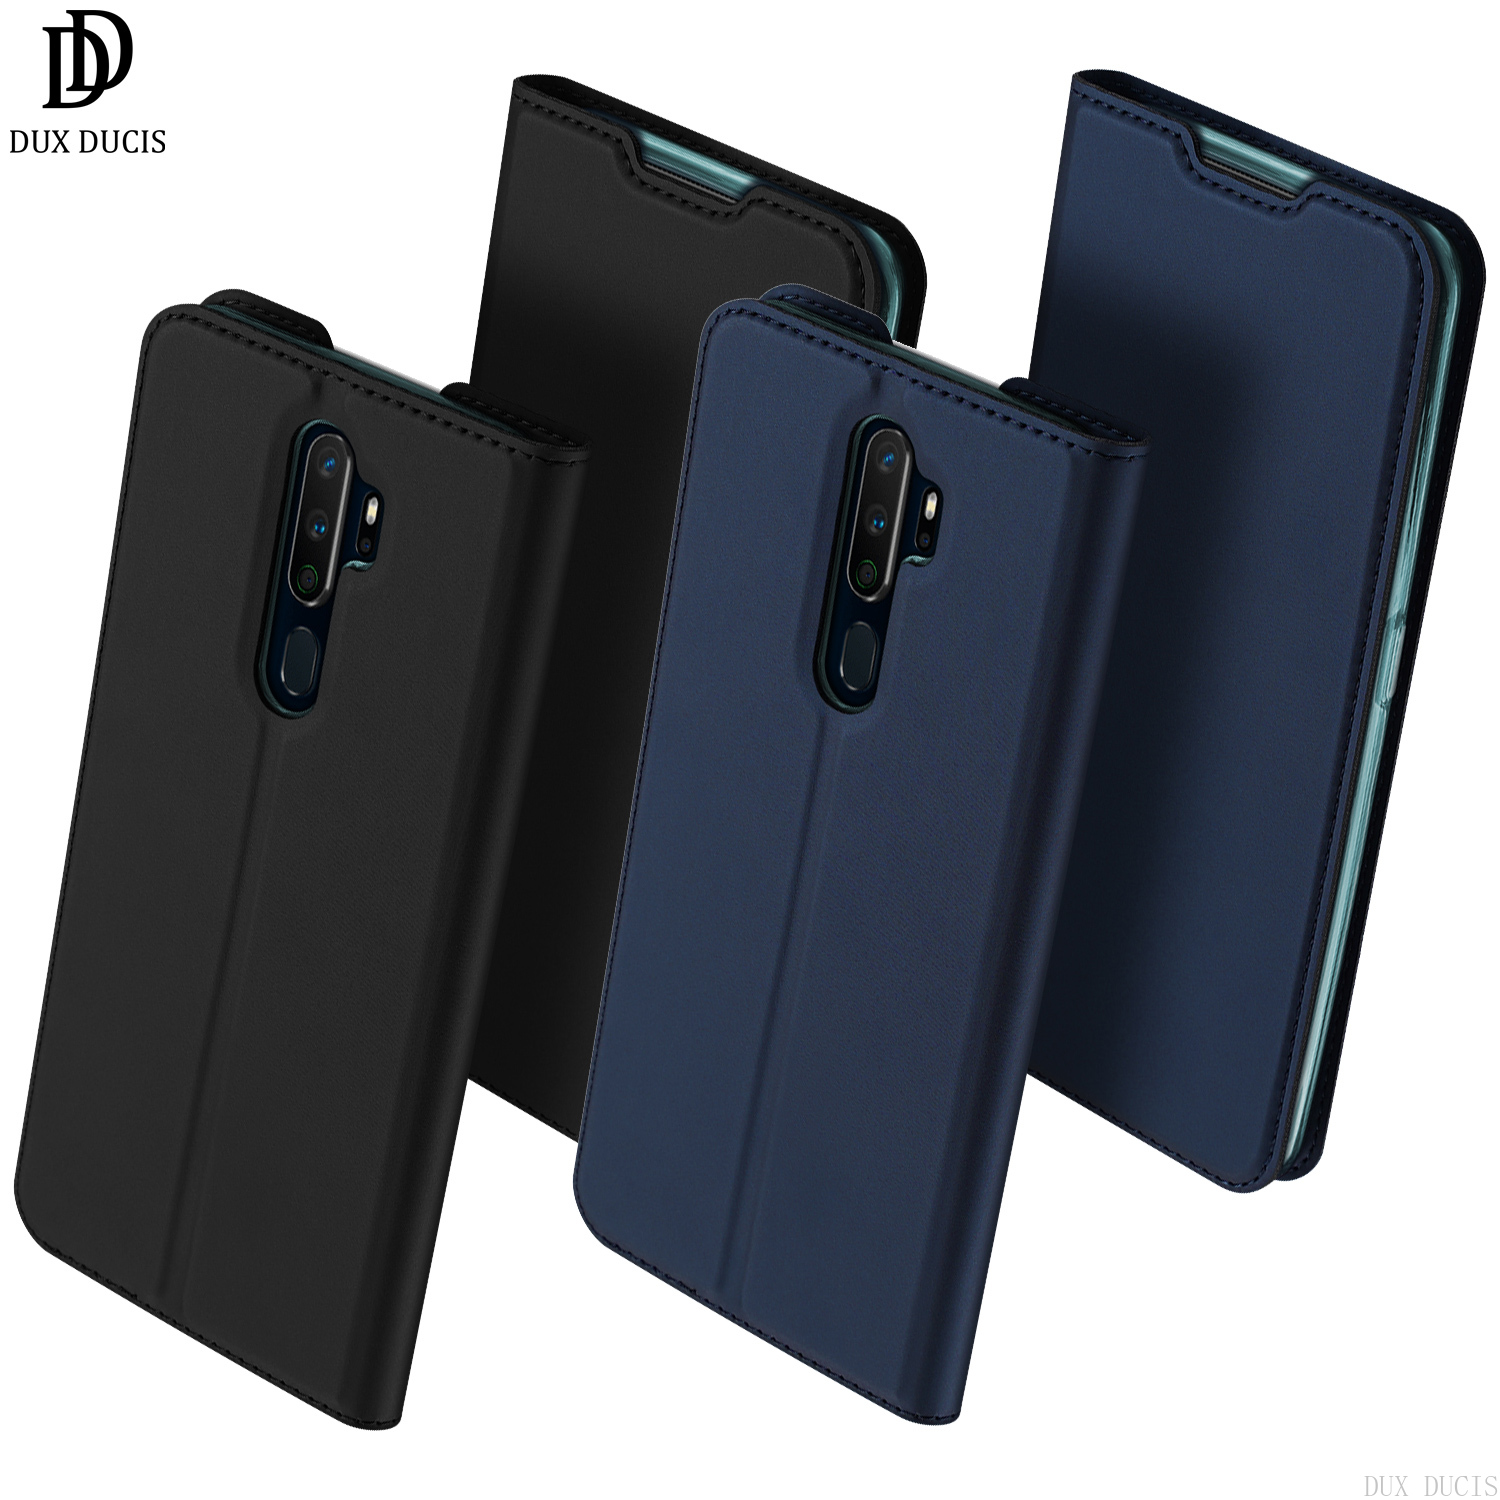 Dux Ducis Flip <font><b>Case</b></font> For <font><b>OPPO</b></font> A9 <font><b>2020</b></font> & <font><b>A5</b></font> <font><b>2020</b></font> Card Slot Holder Wallet Stand Cover TPU Soft Bumper Protective Anti-knock <font><b>Case</b></font> image